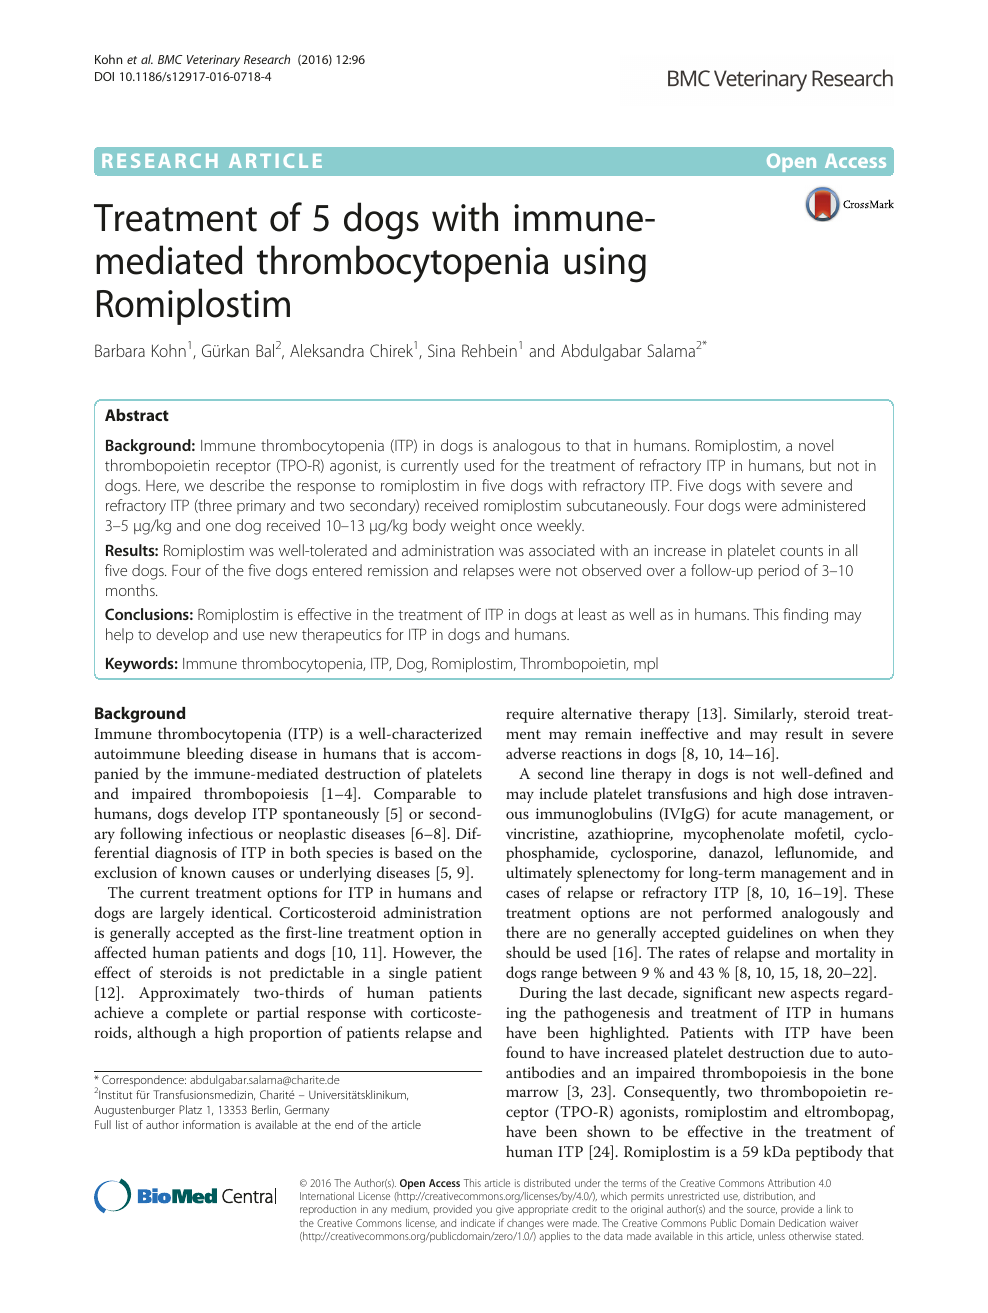 Treatment Of 5 Dogs With Immune Mediated Thrombocytopenia Using Romiplostim Topic Of Research Paper In Veterinary Science Download Scholarly Article Pdf And Read For Free On Cyberleninka Open Science Hub